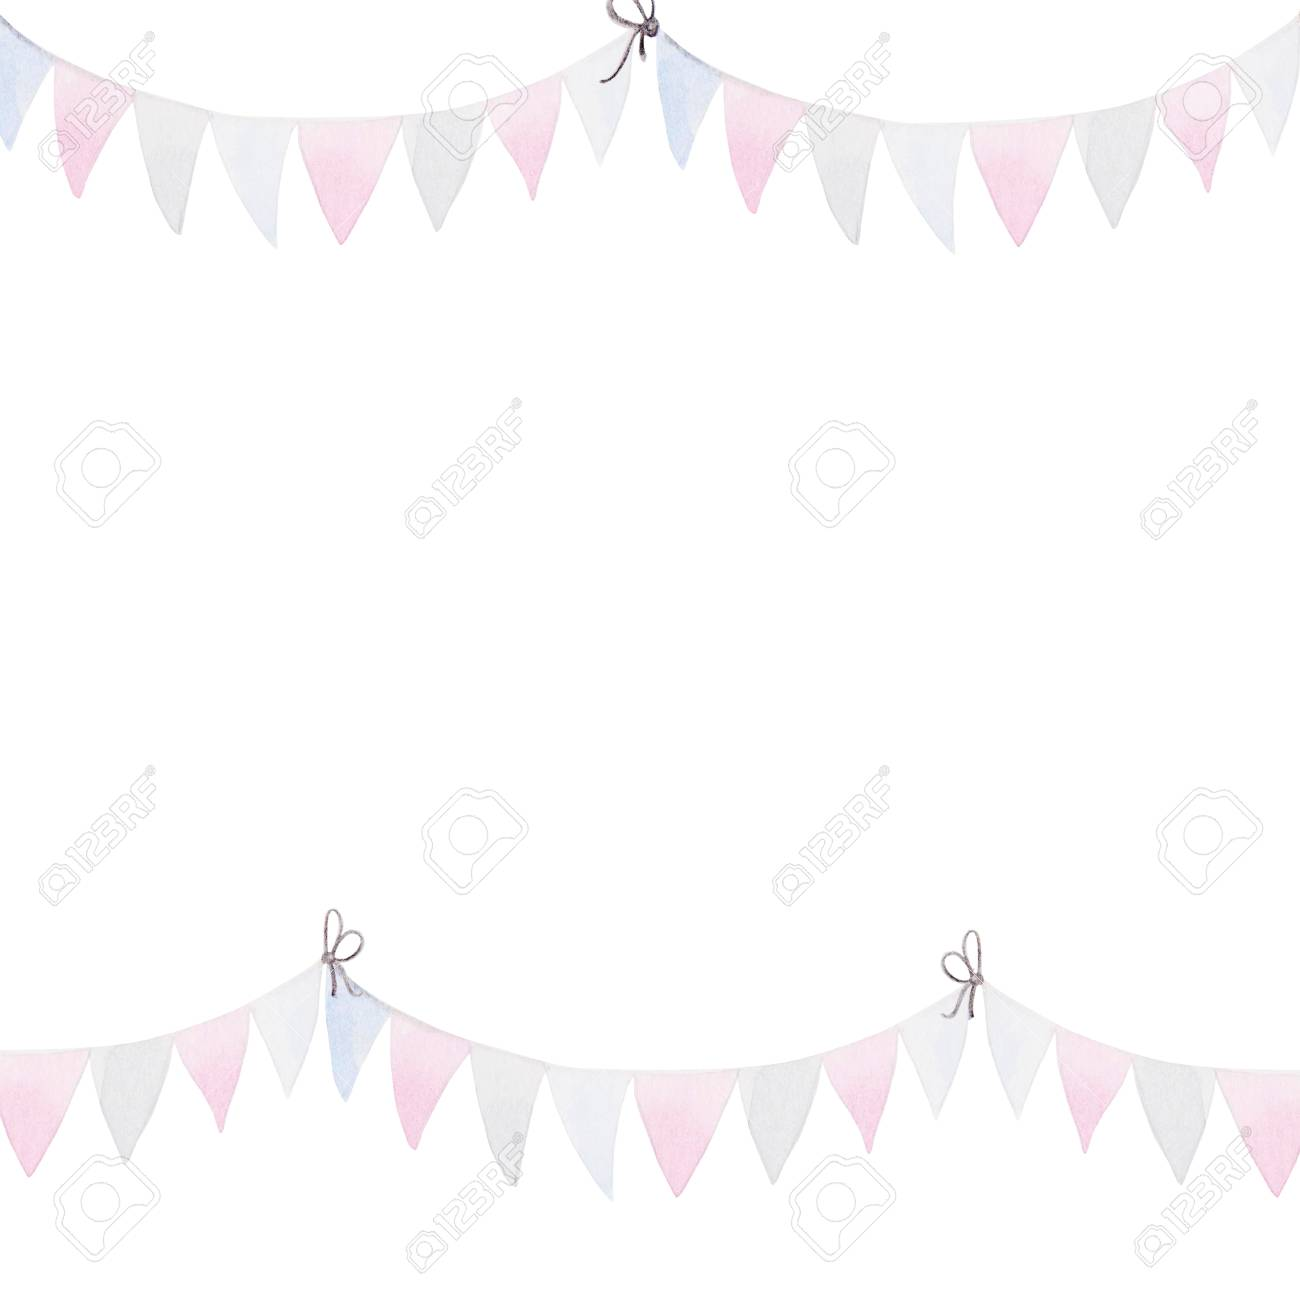 Frame for 4th of July. Watercolor Bunting Flags. Celebration of American Independence Day. - 98521092